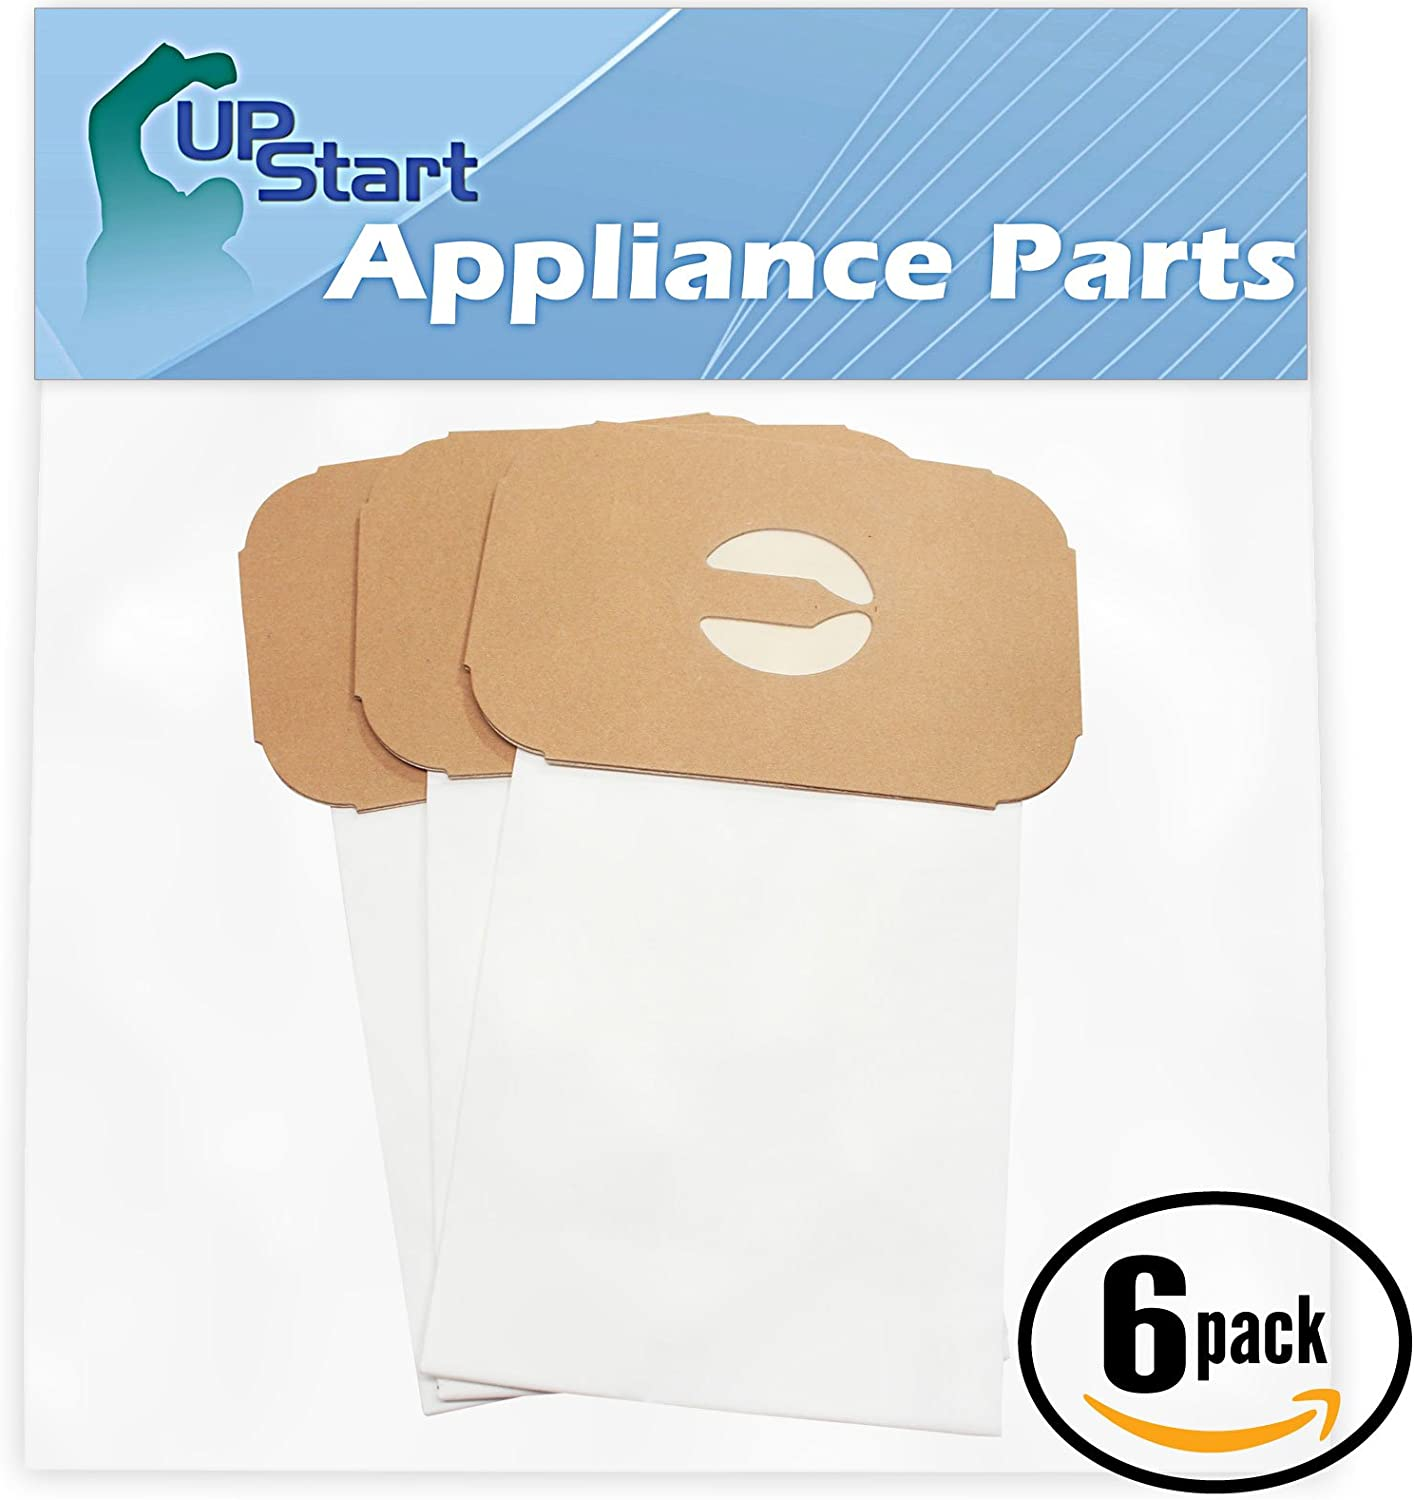 Upstart Battery 18 Replacement for Aerus/Electrolux Type C Vacuum Bags - Compatible with Aerus/Electrolux Canister Tank Style C Vacuum Bags (6-Pack - 3 Vacuum Bags per Pack)